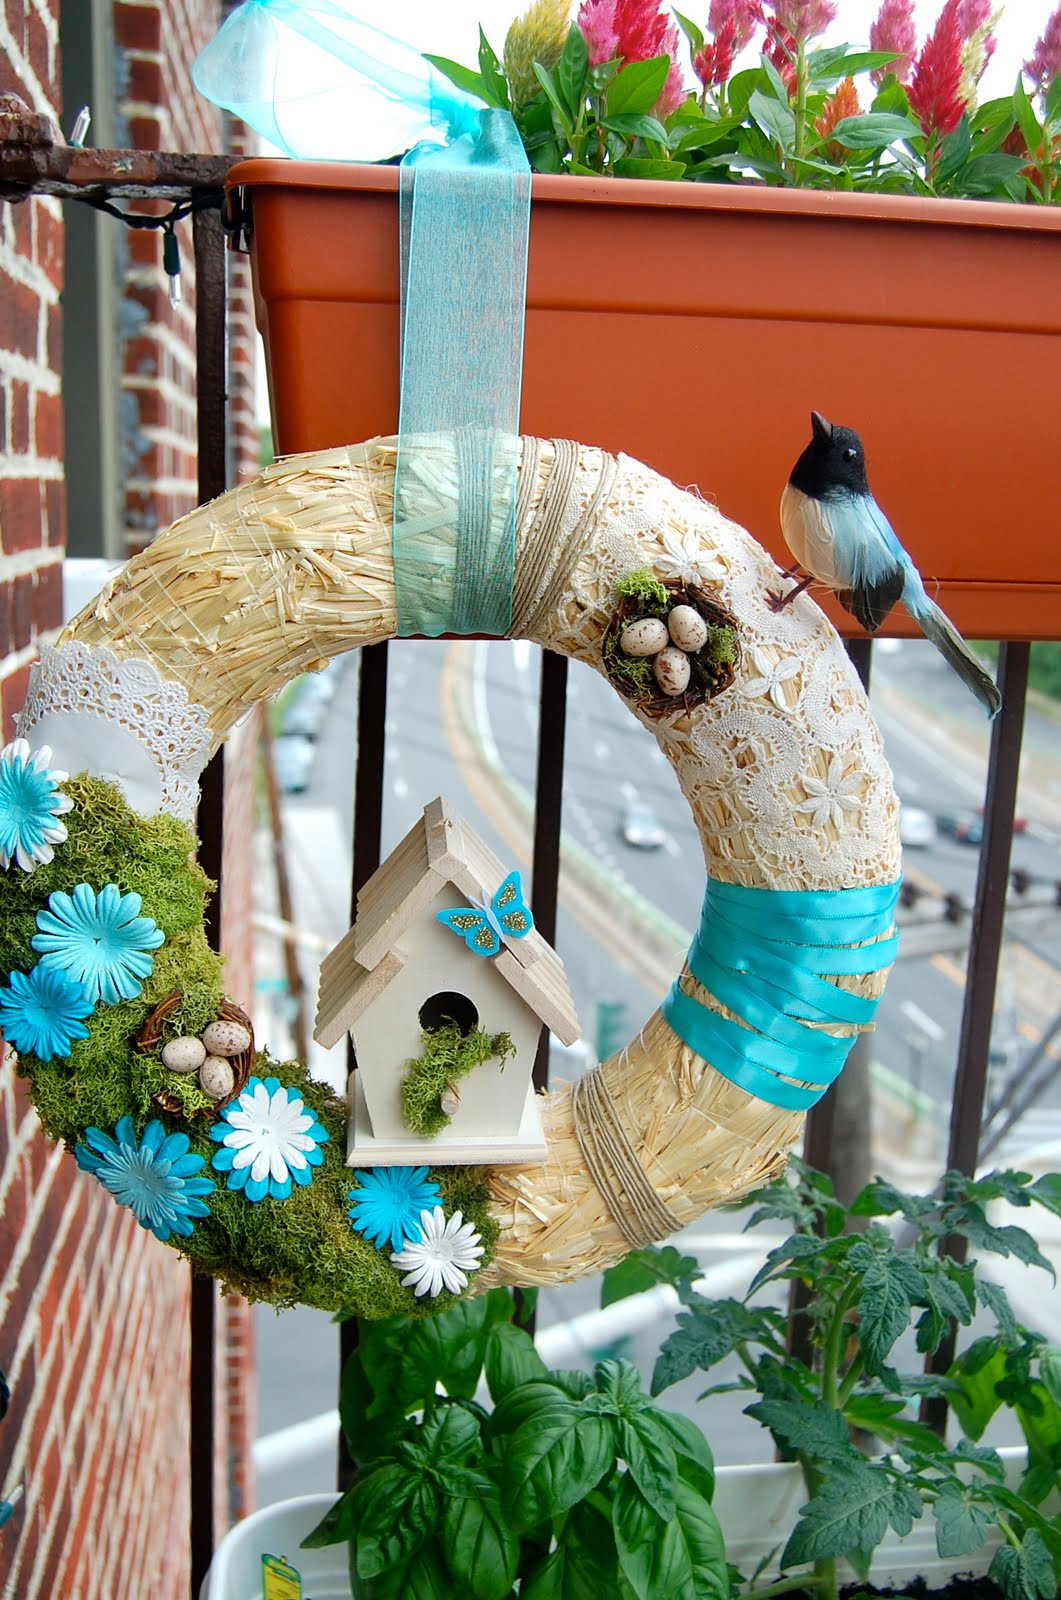 Best ideas about DIY Spring Wreath . Save or Pin ohh my gracious Spring Wreath DIY Now.